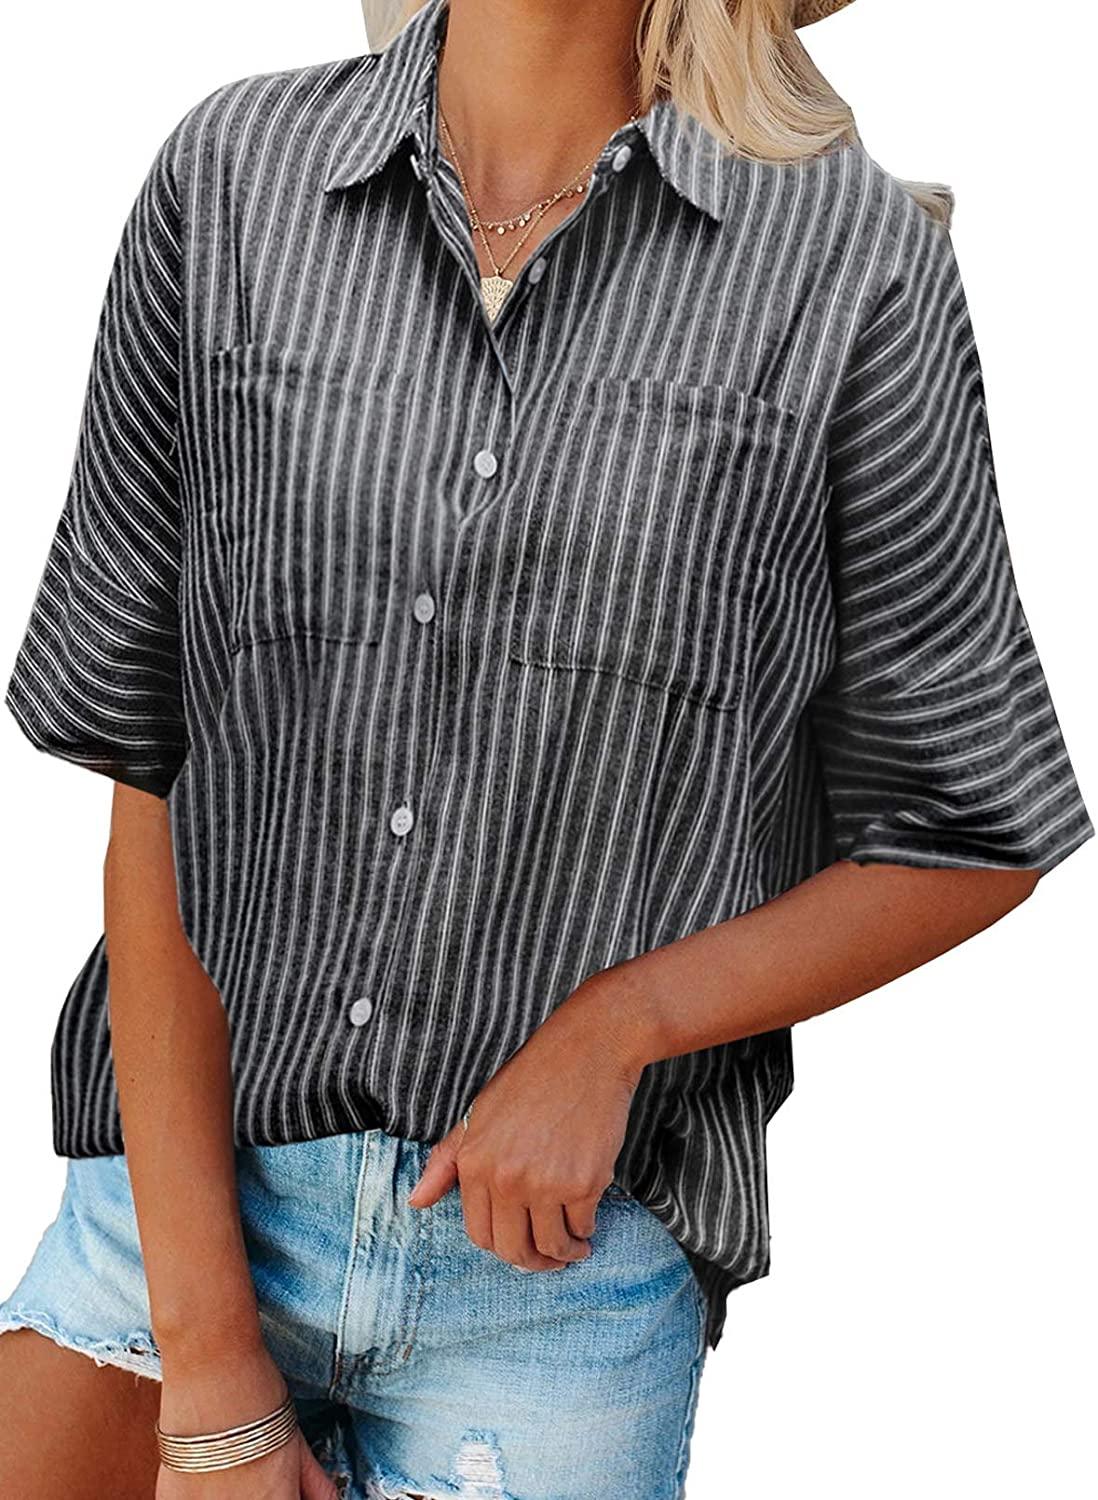 ROSKIKI Womens Short Sleeve V-Neck Casual Blouse Striped Button Down Pockets Shirt Tops (S-2XL)